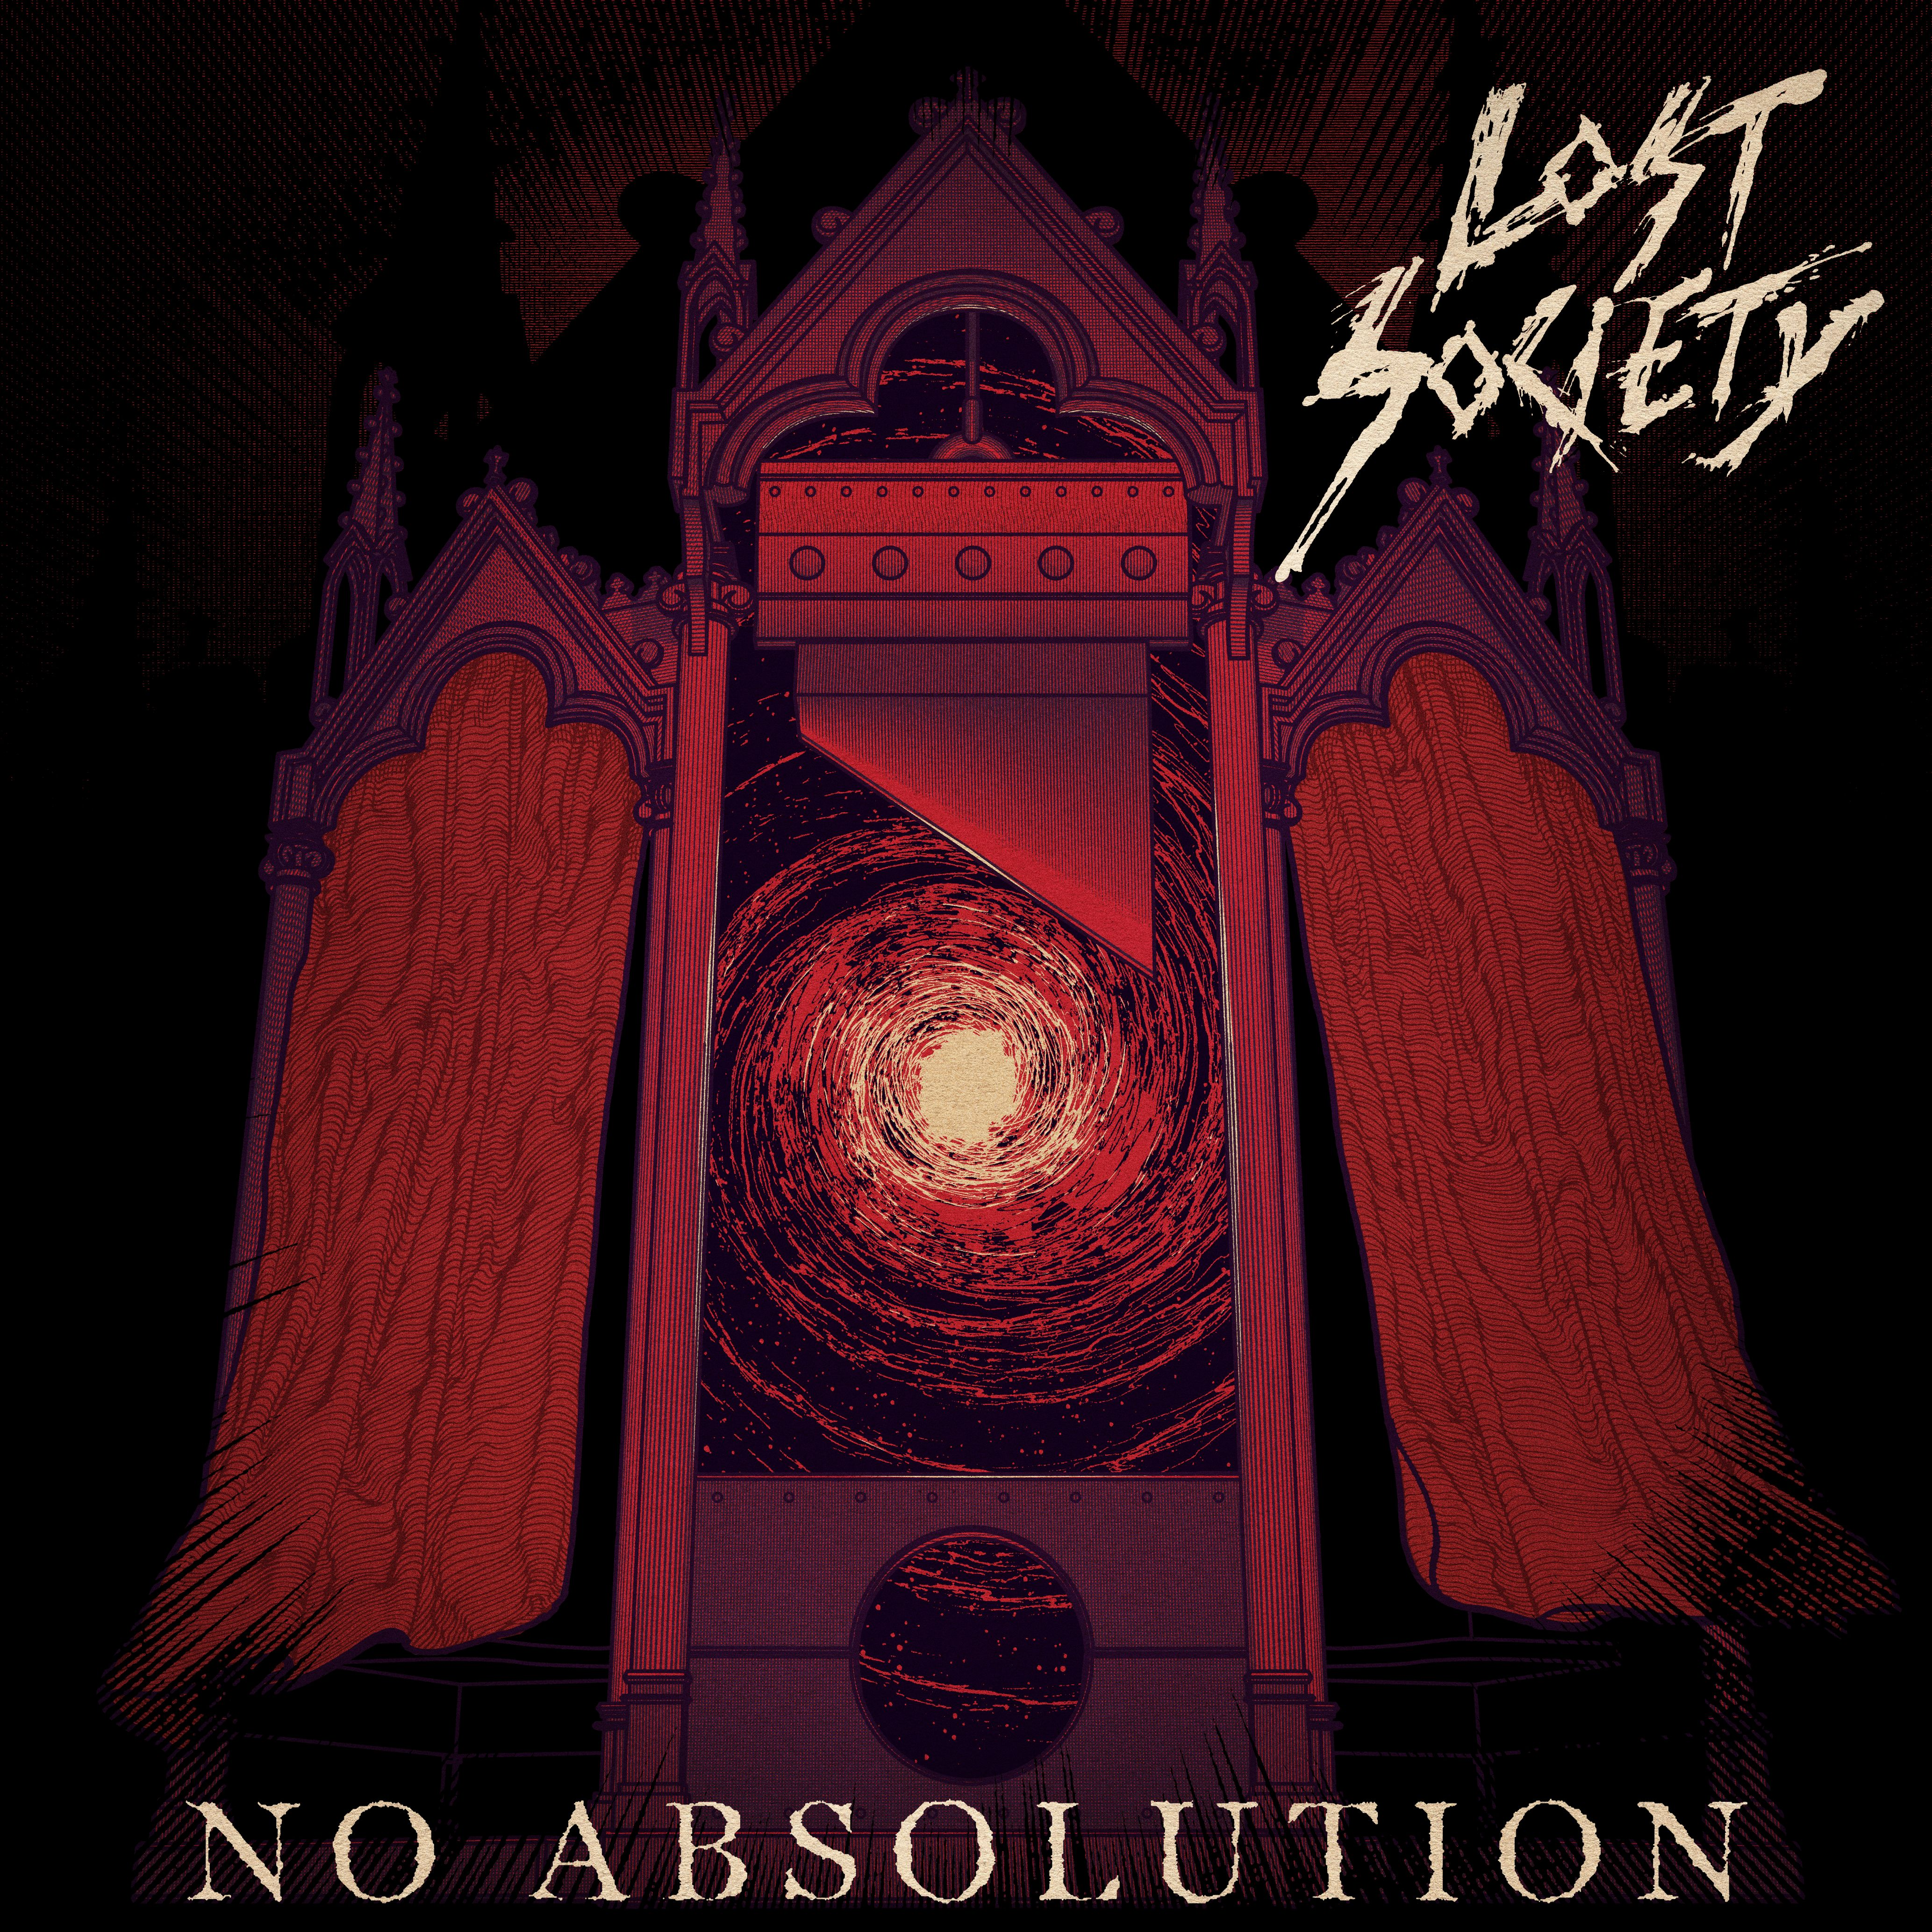 Lost Society - No Absolution album cover